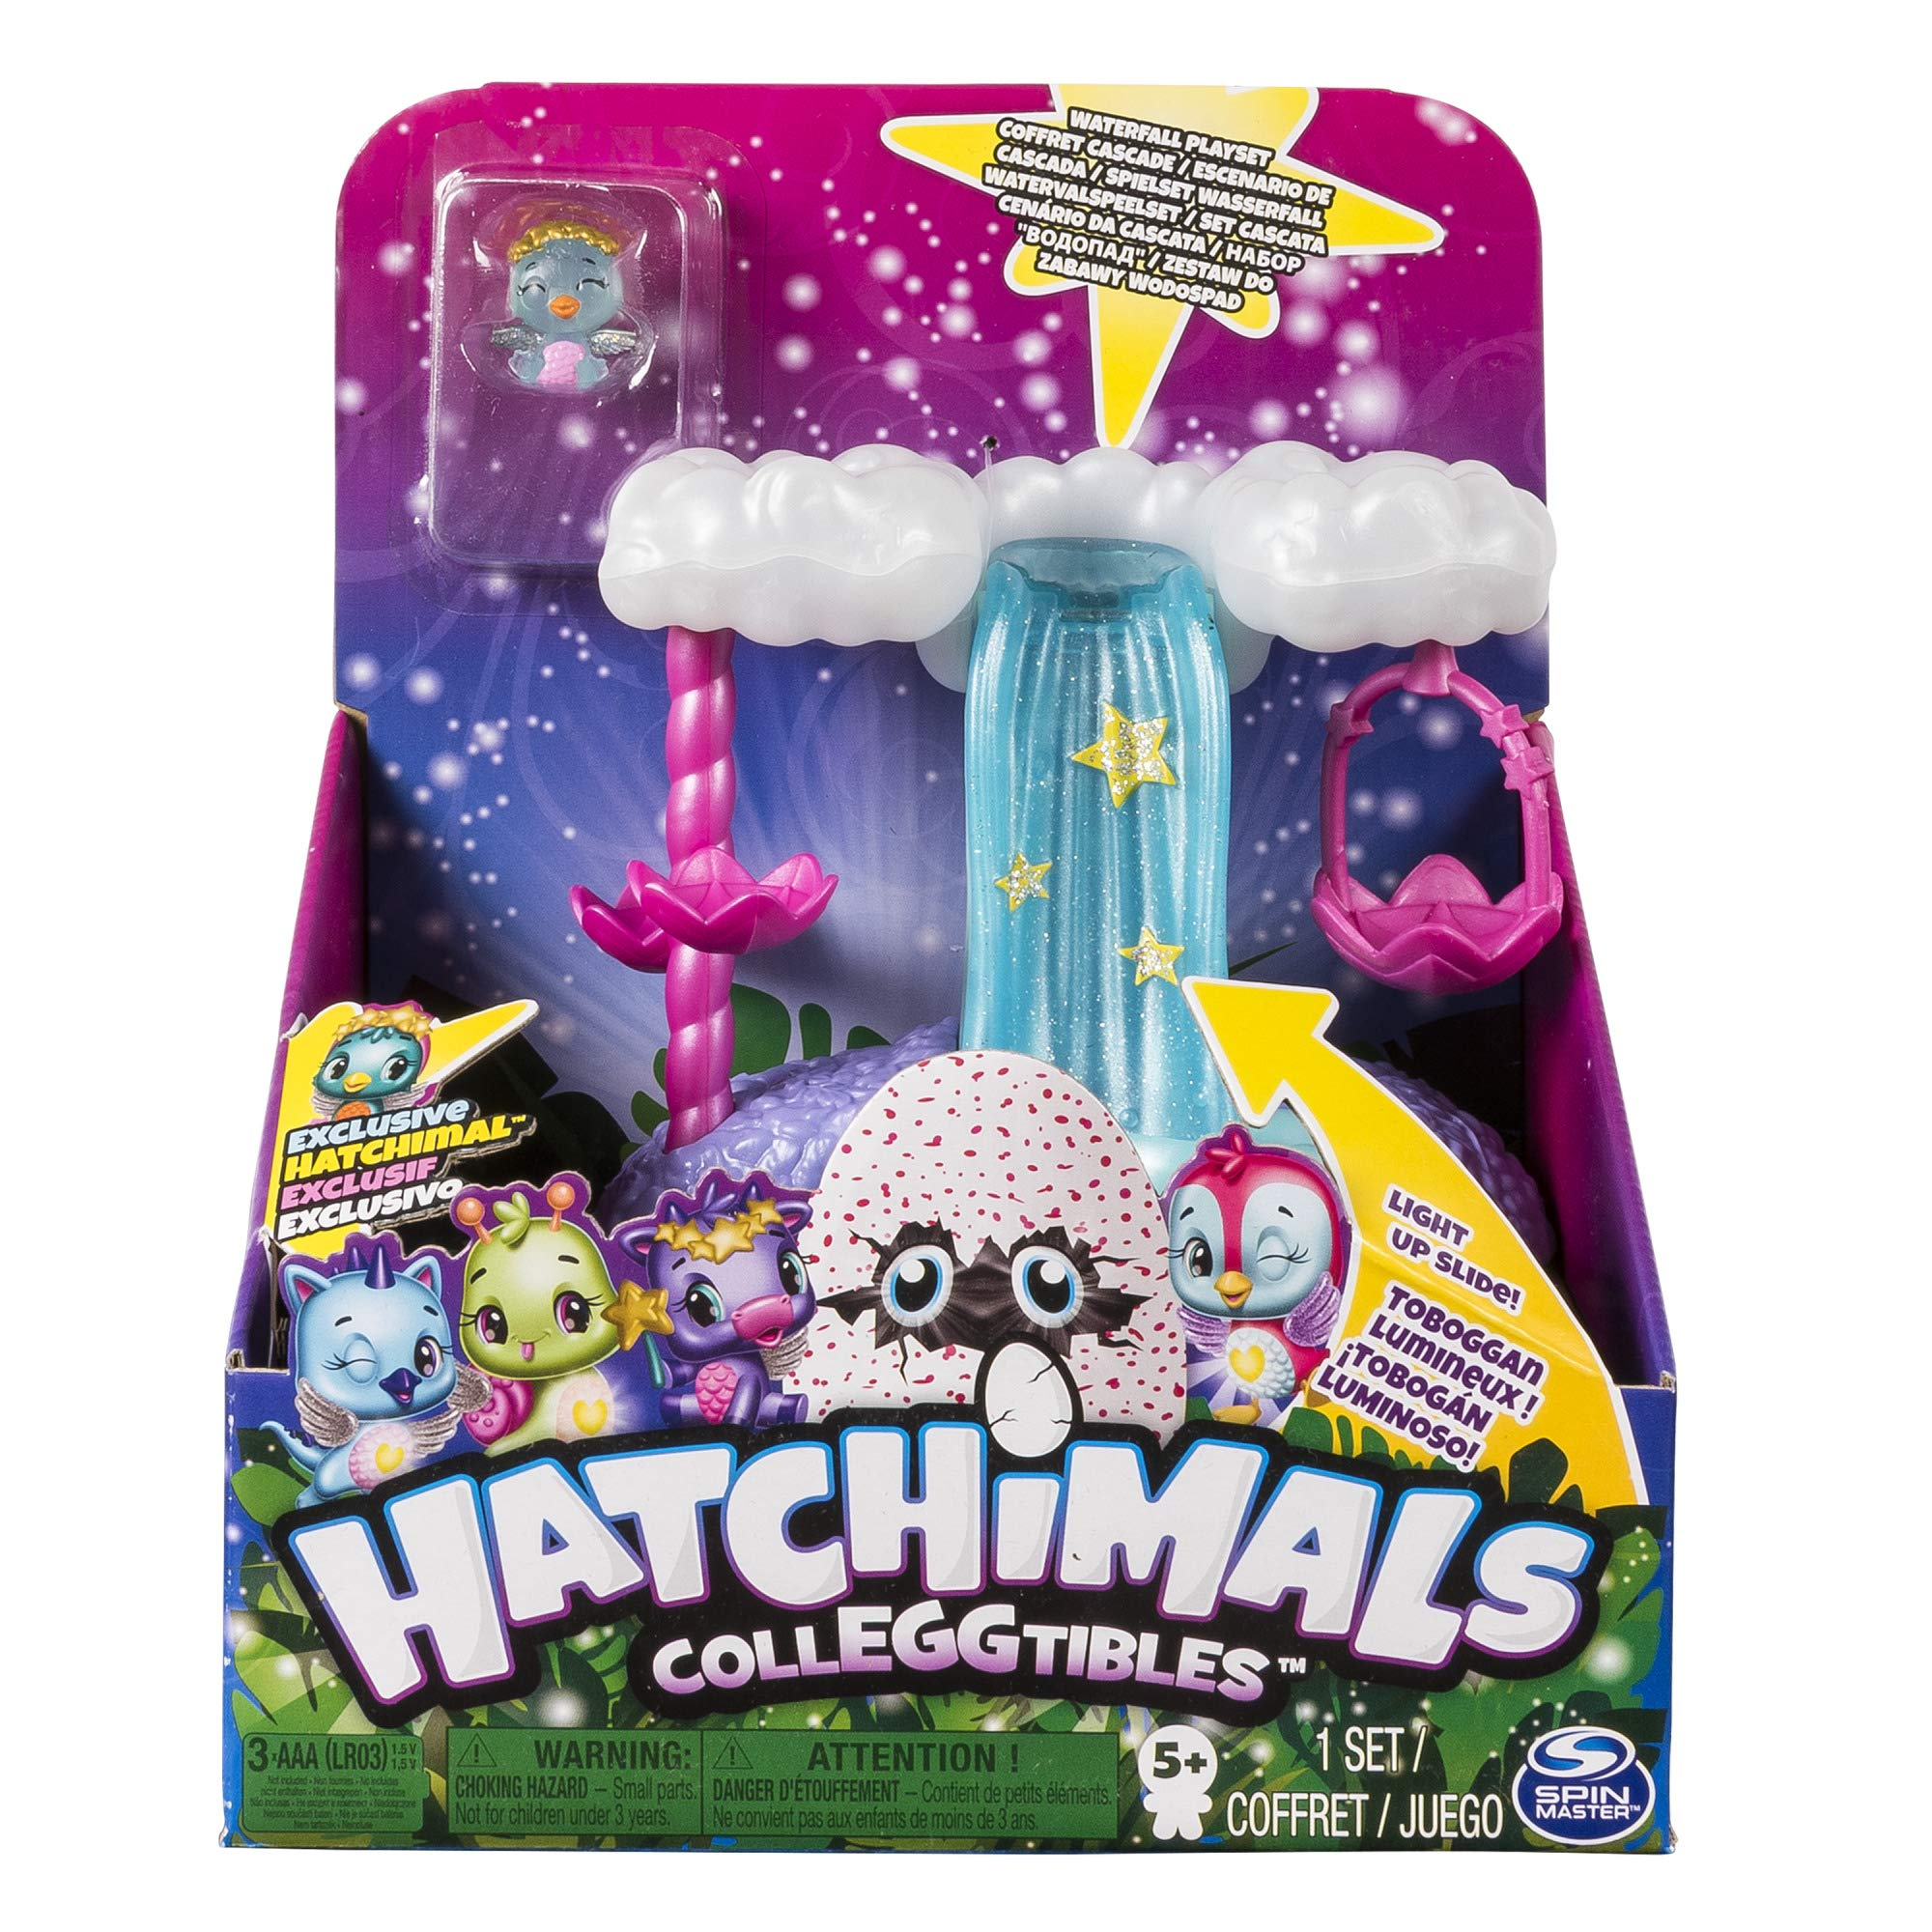 Mixed Colours Spin Master Hatchimals 6045503 Colleggtibles Series 5 Water Slide Playset